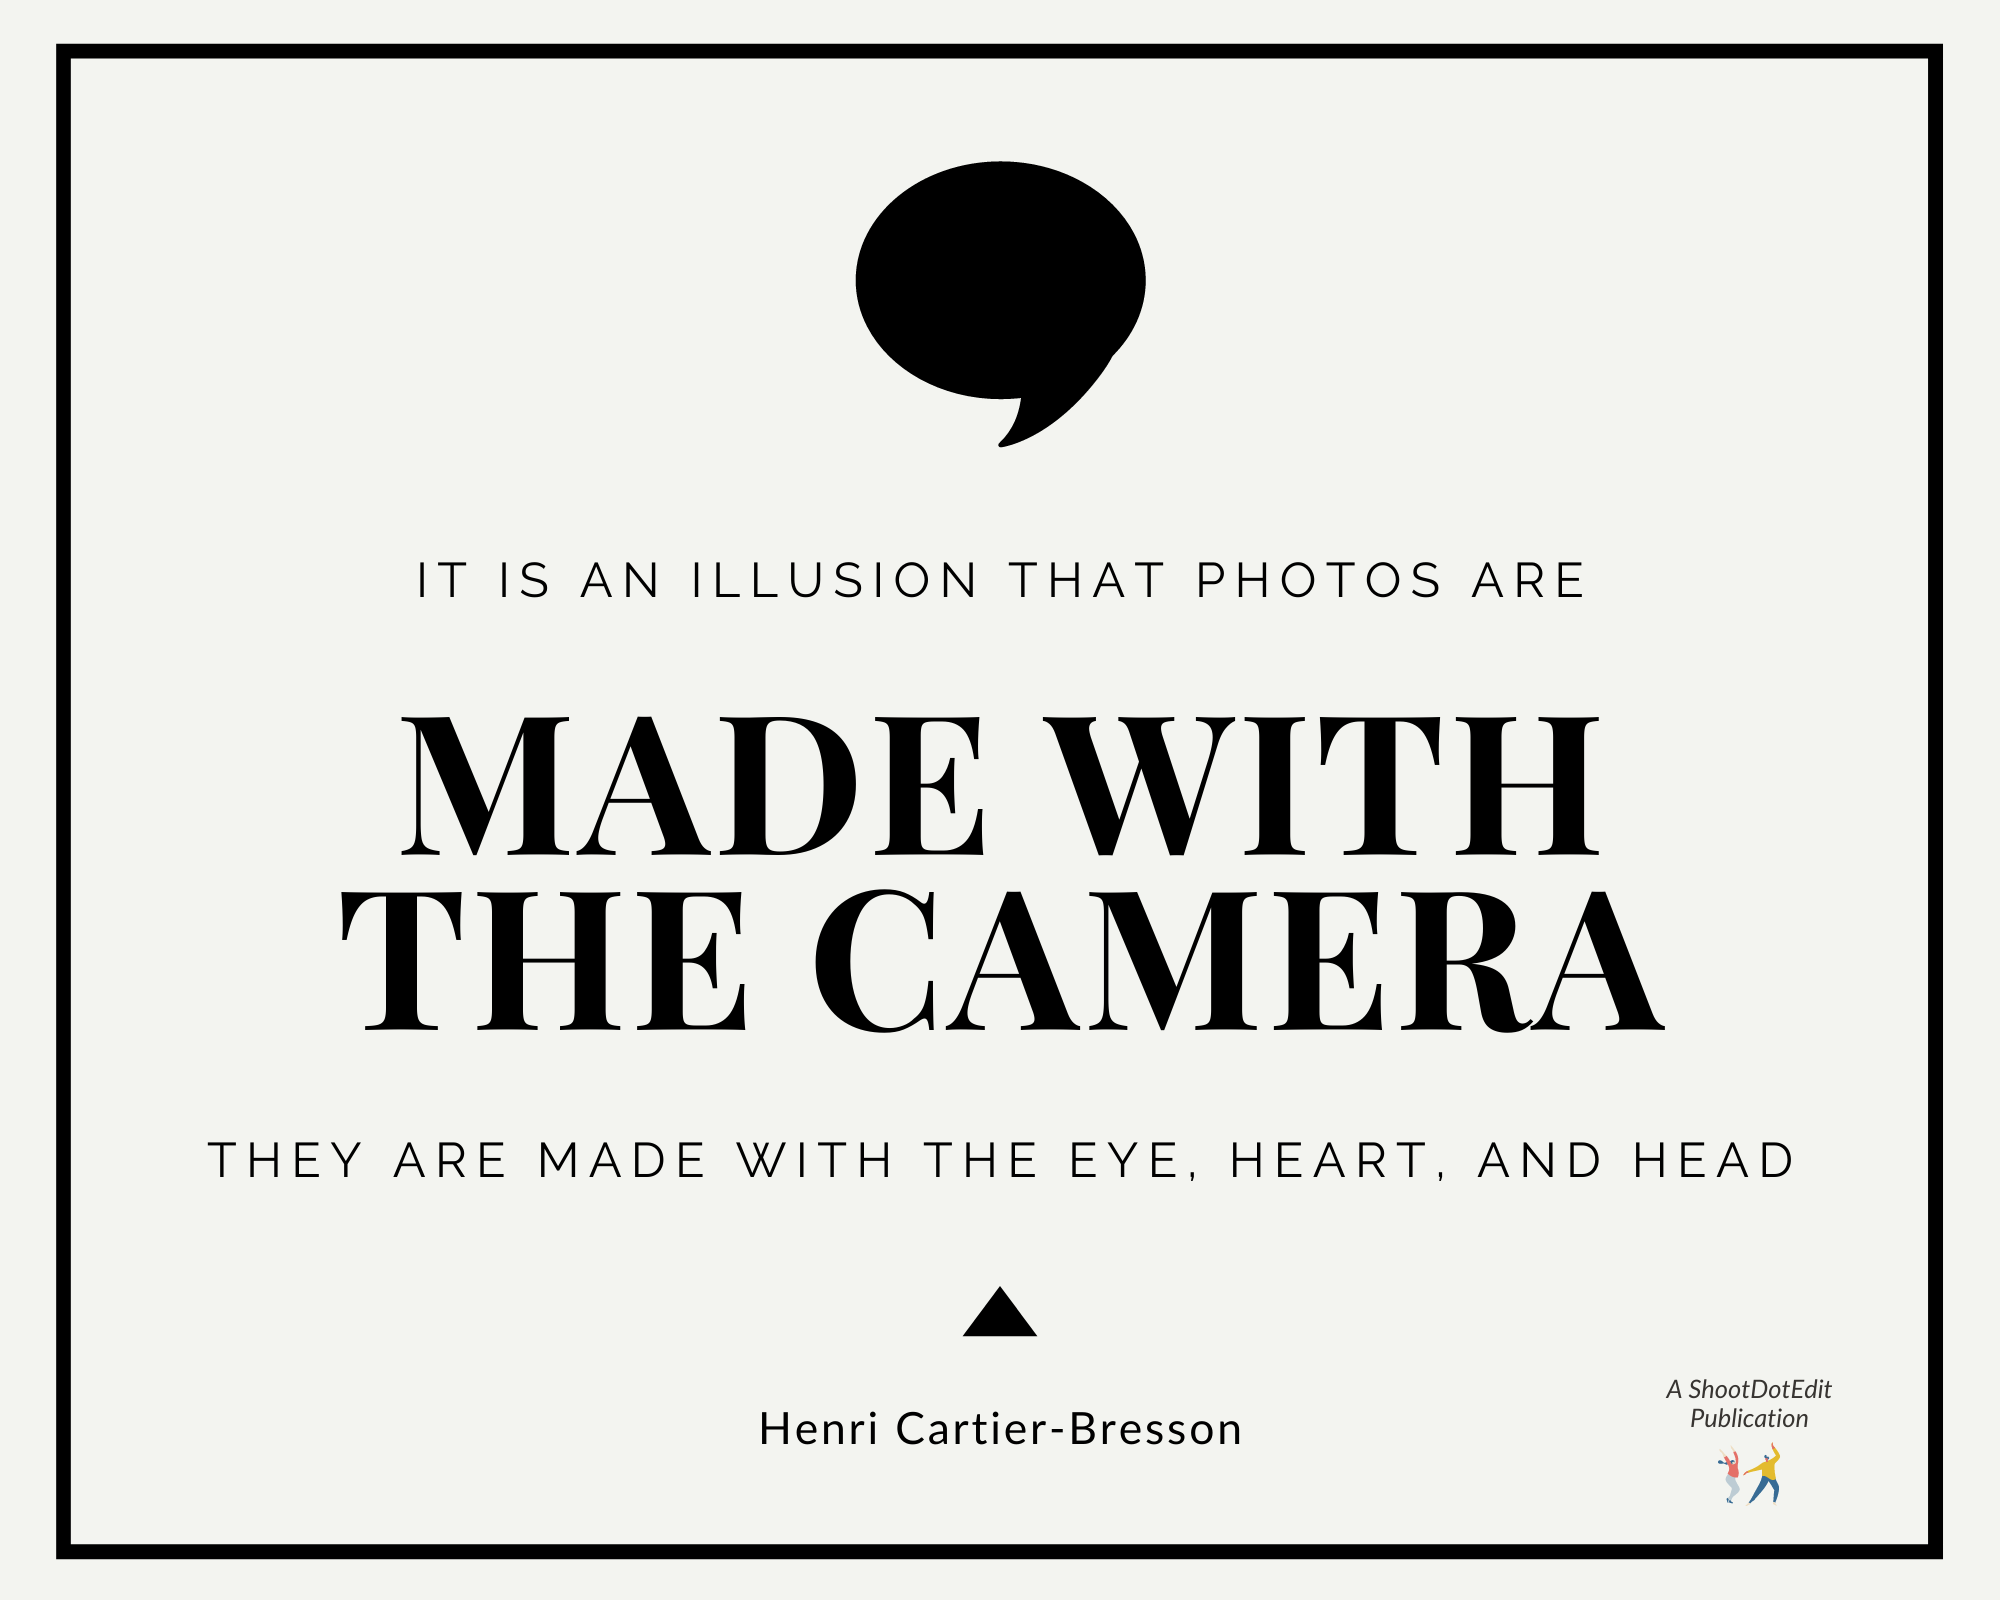 Infographic stating it is an illusion that photos are made with the camera they are made with the eye, heart, and head